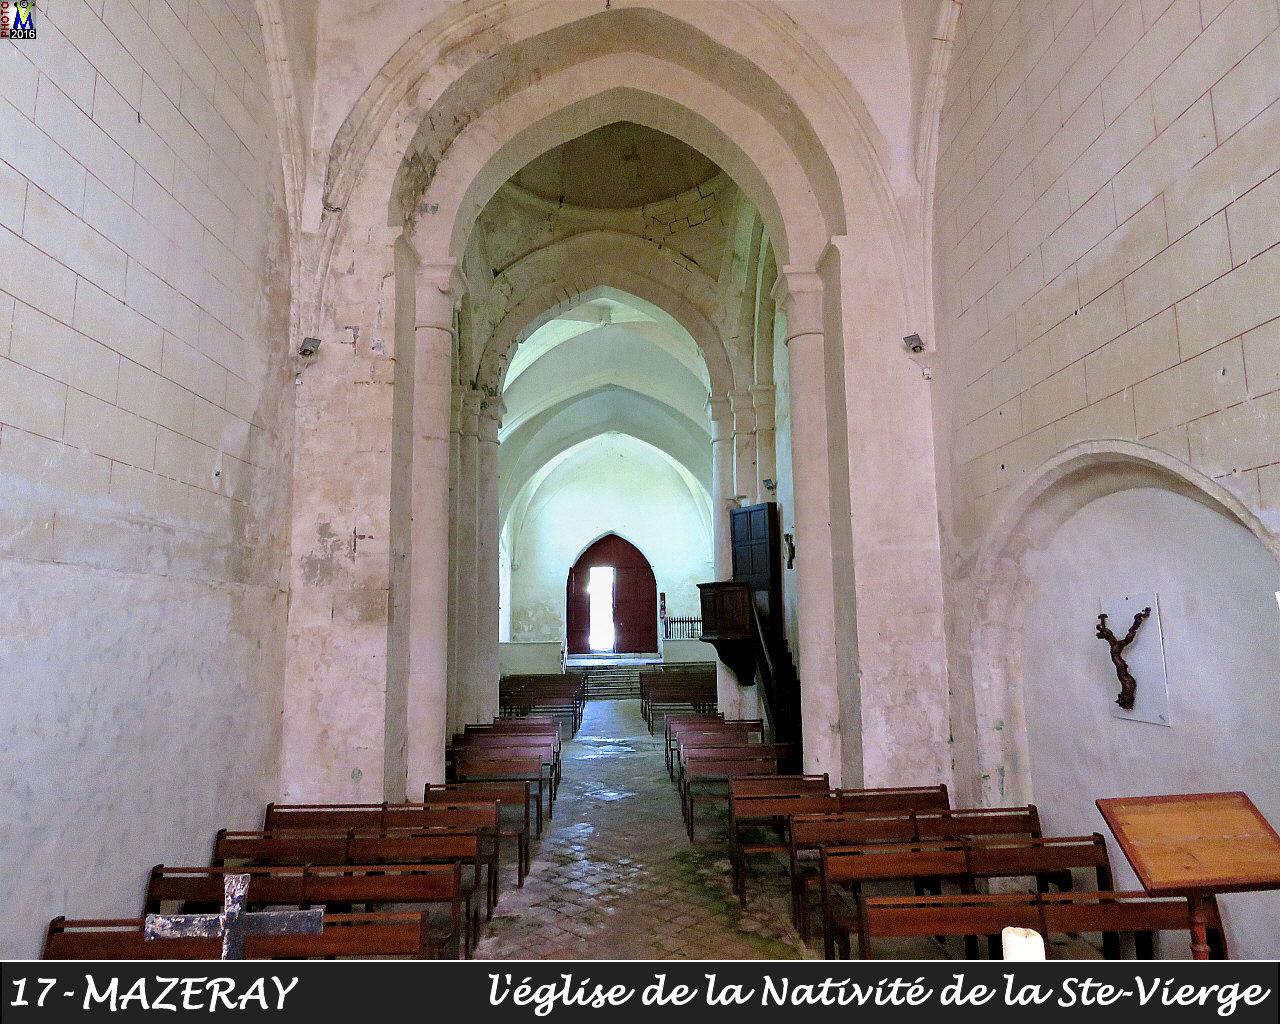 17MAZERAY_eglise_1102.jpg